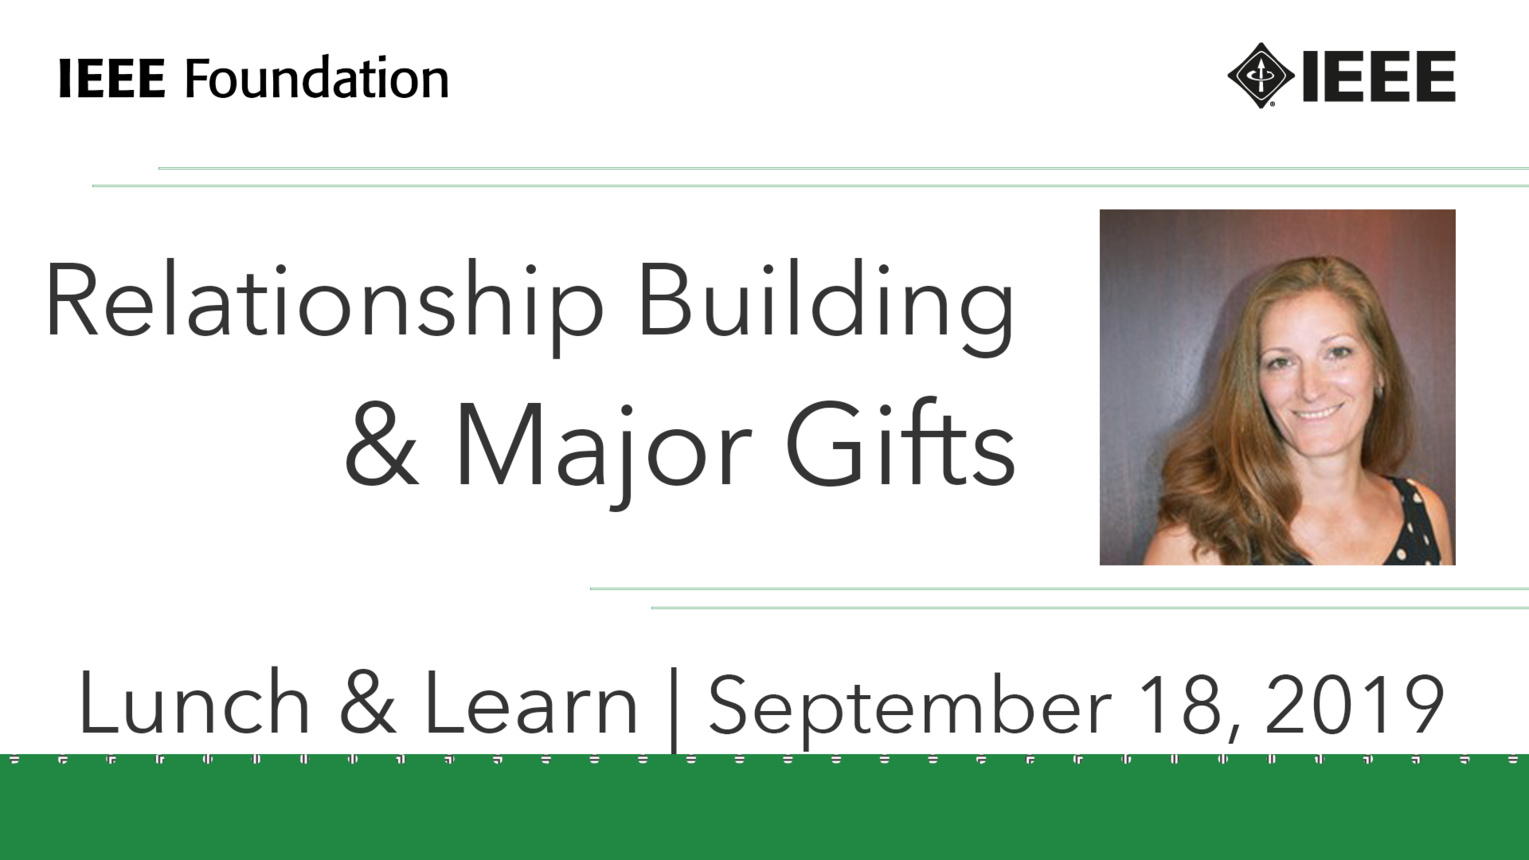 Relationship Building & Major Gifts: IEEE Foundation Development Education Strategies Series, Part 3 of 4